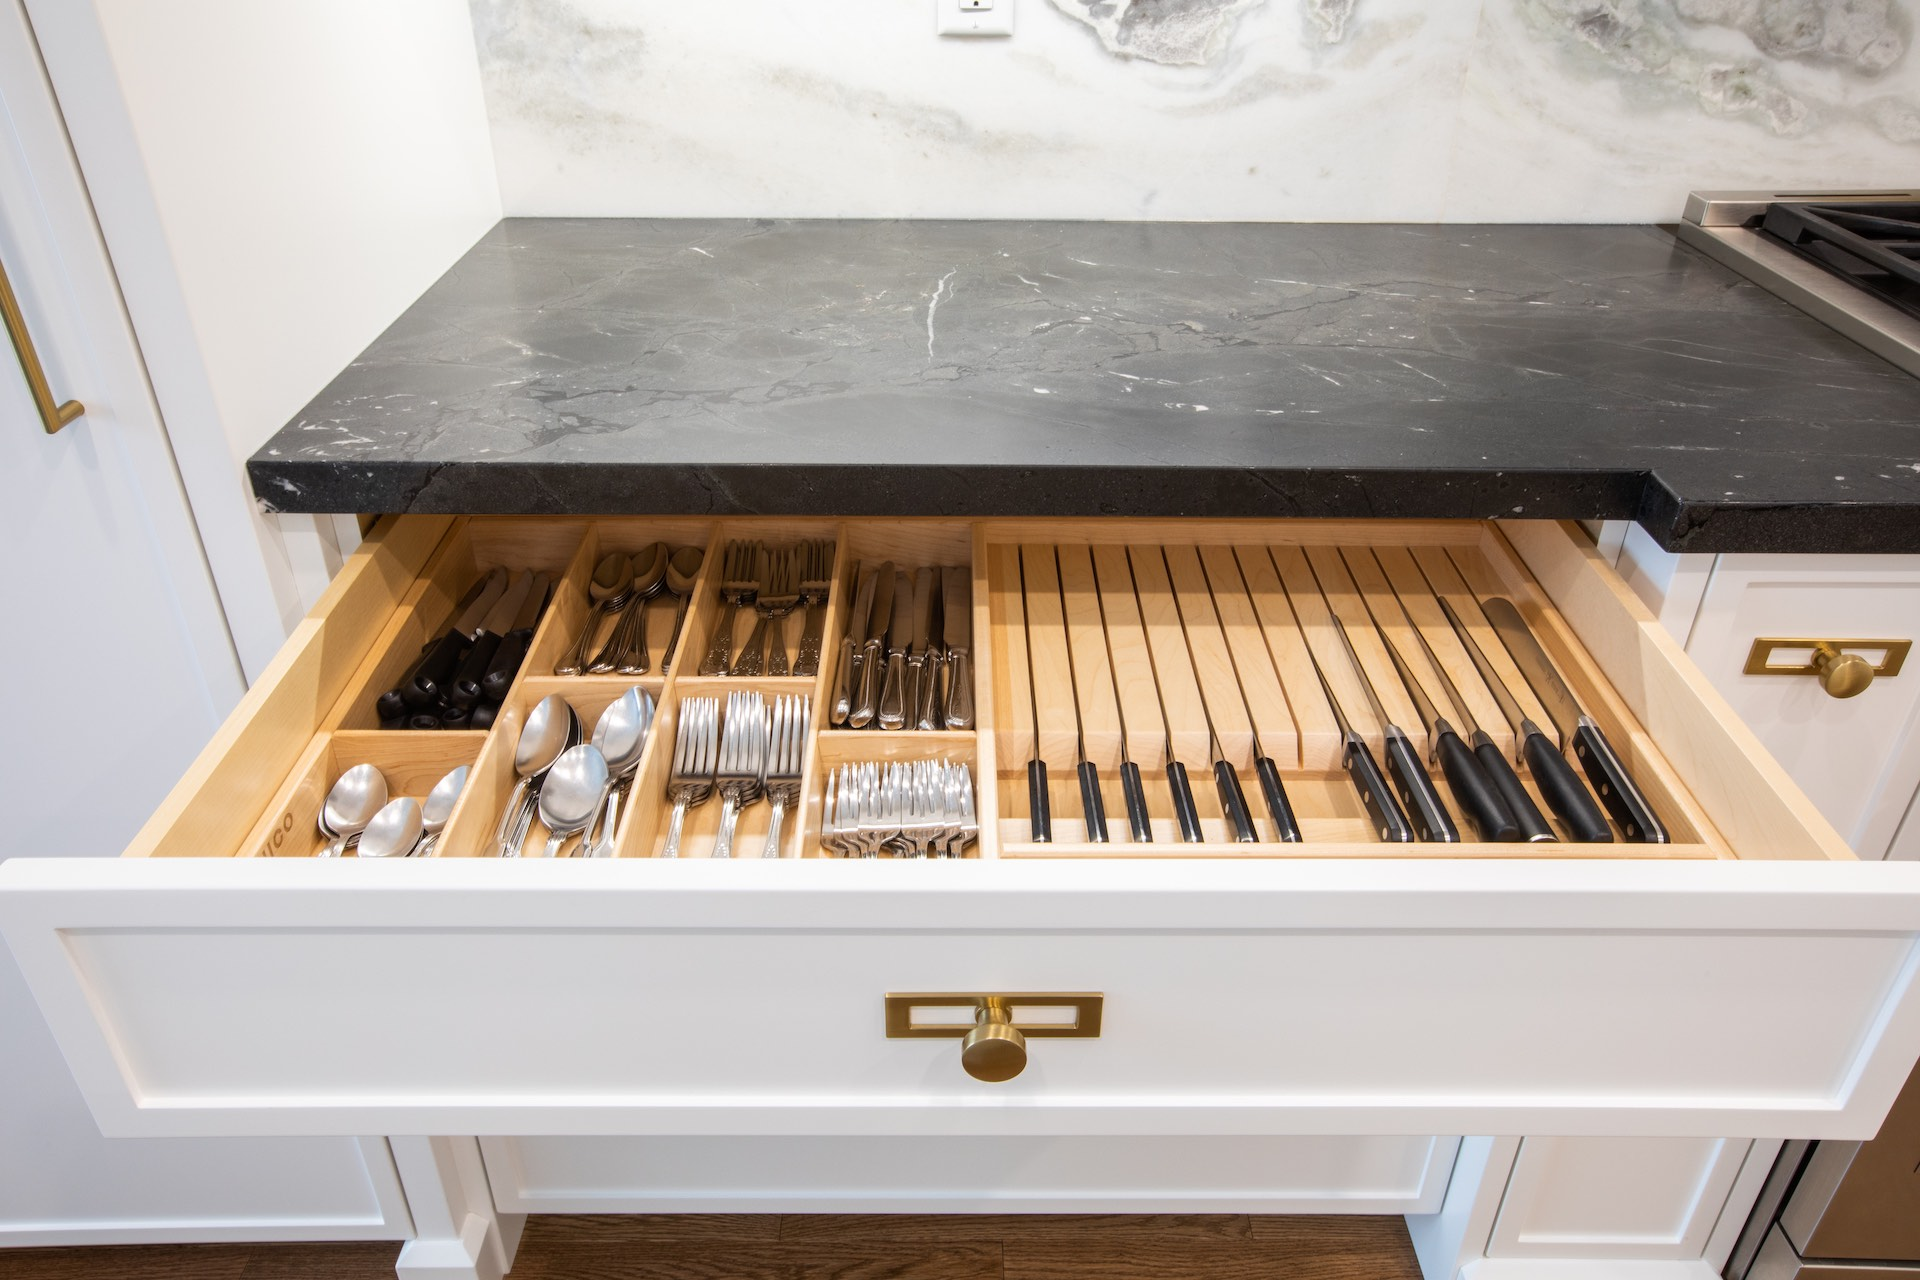 Black marble counter with white kitchen drawer open with knives